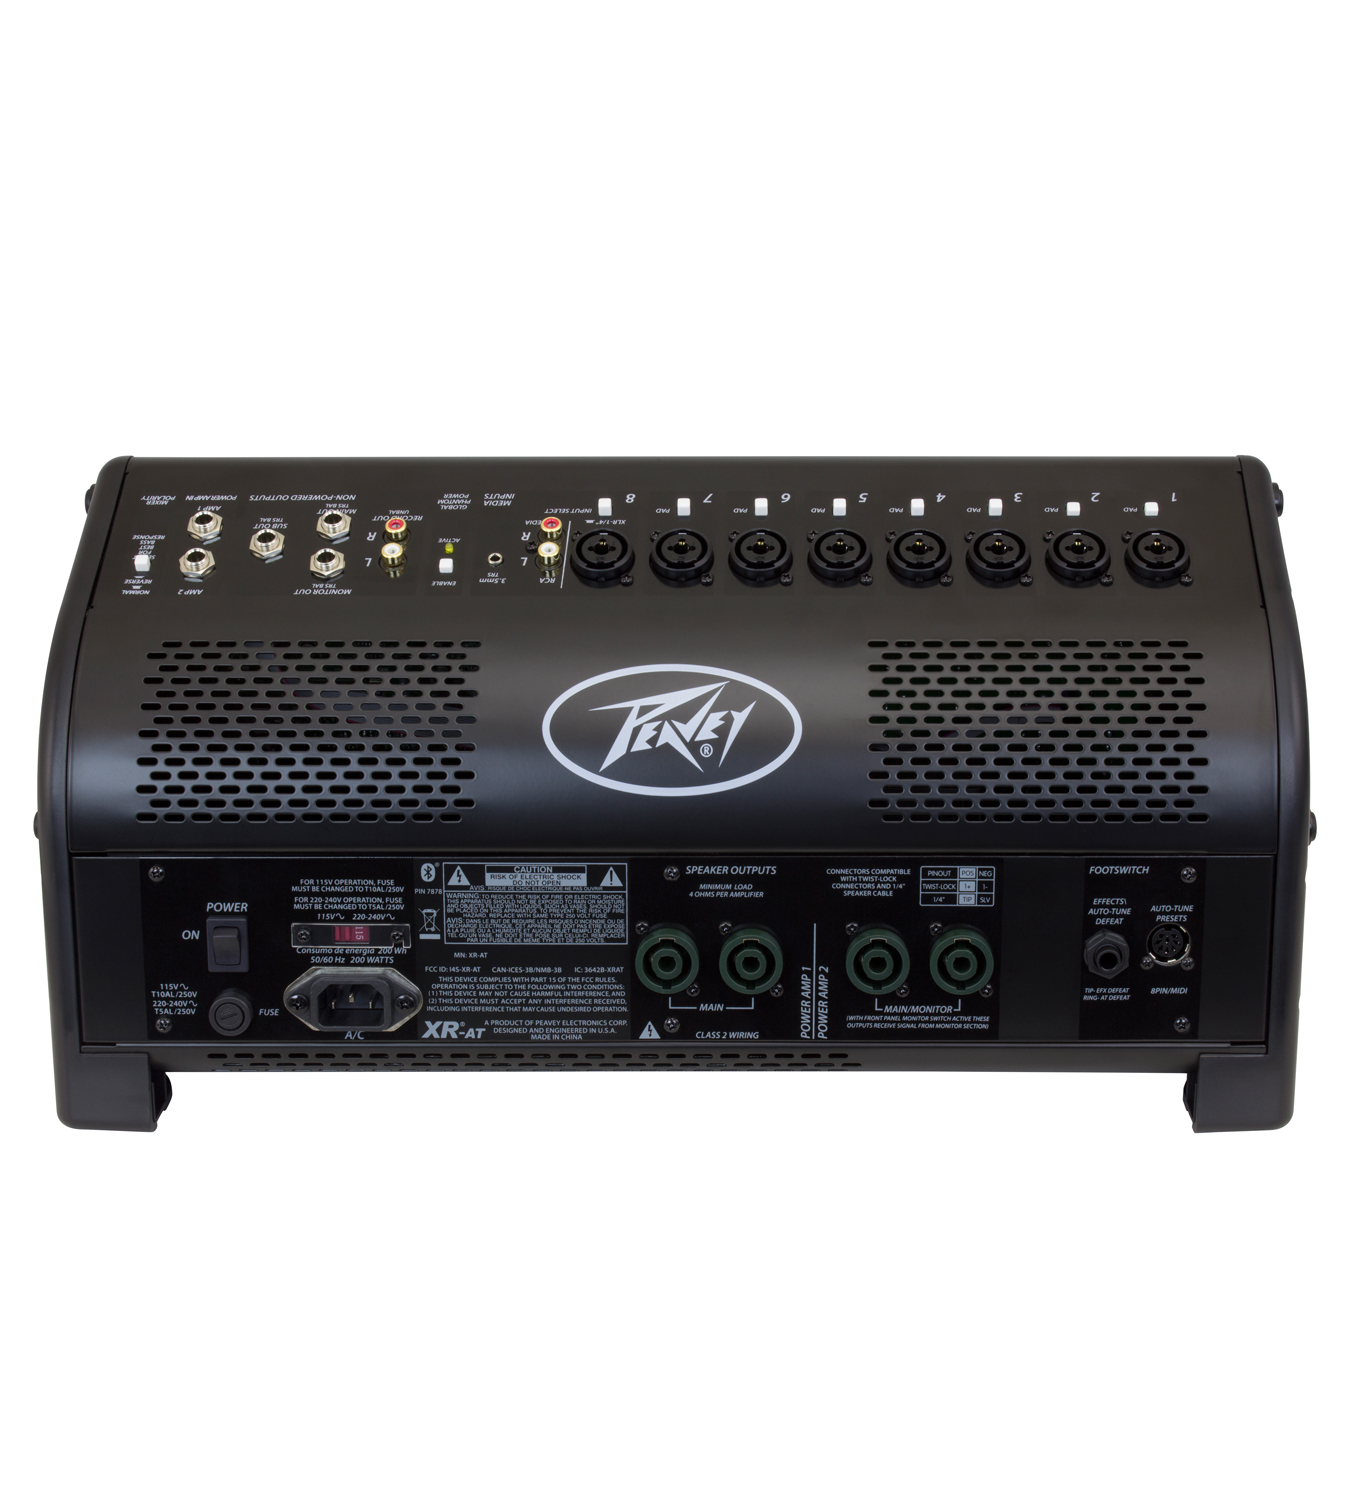 xr at powered mixer peavey com rh peavey com Word Manual Guide User Guide Template